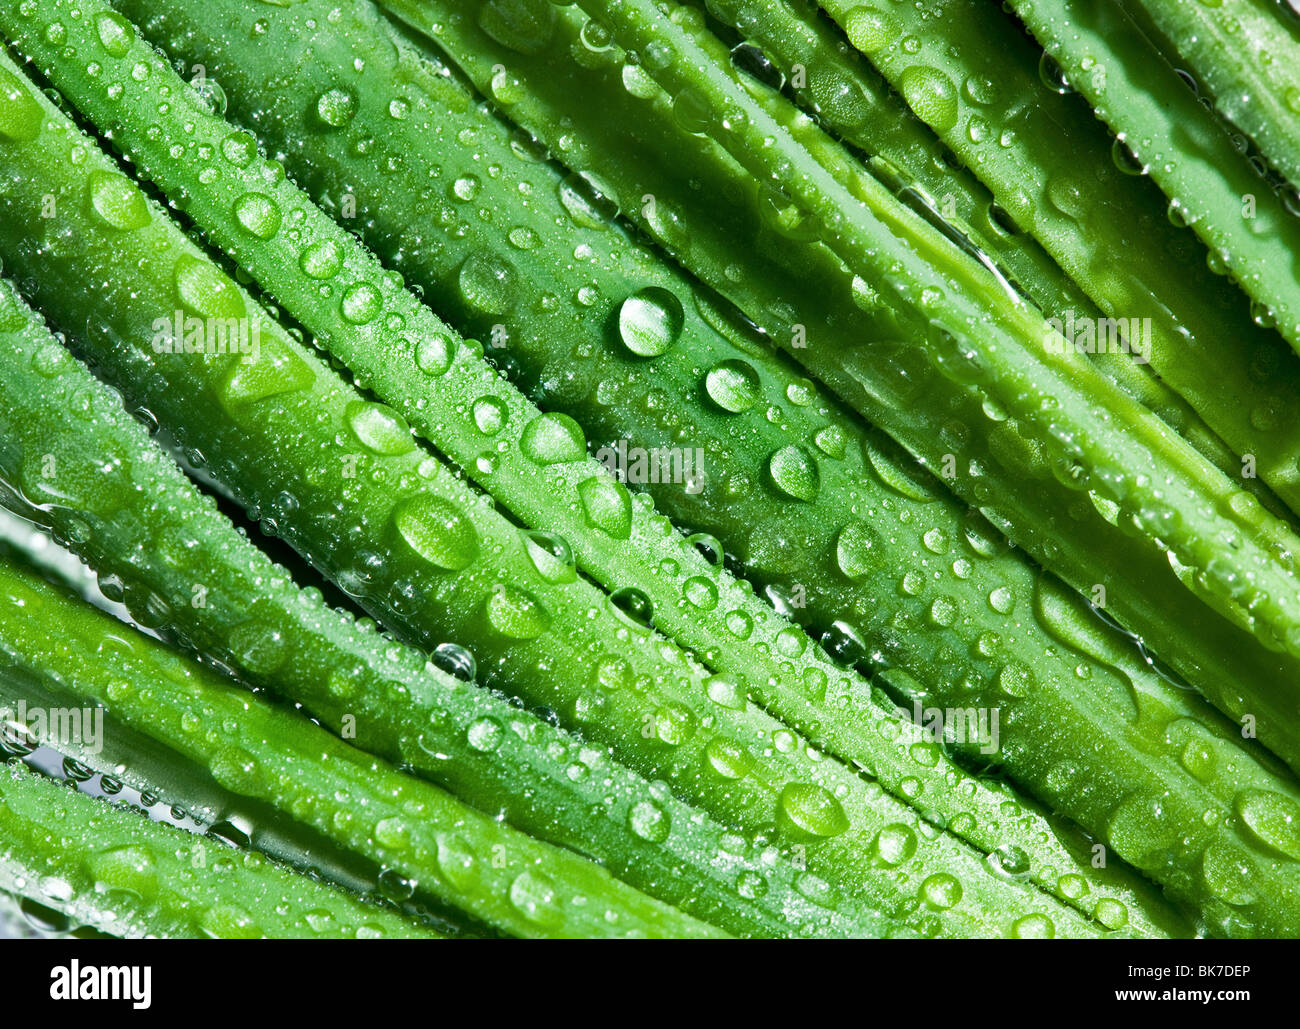 Leaves of onion closeup with water drops - Stock Image